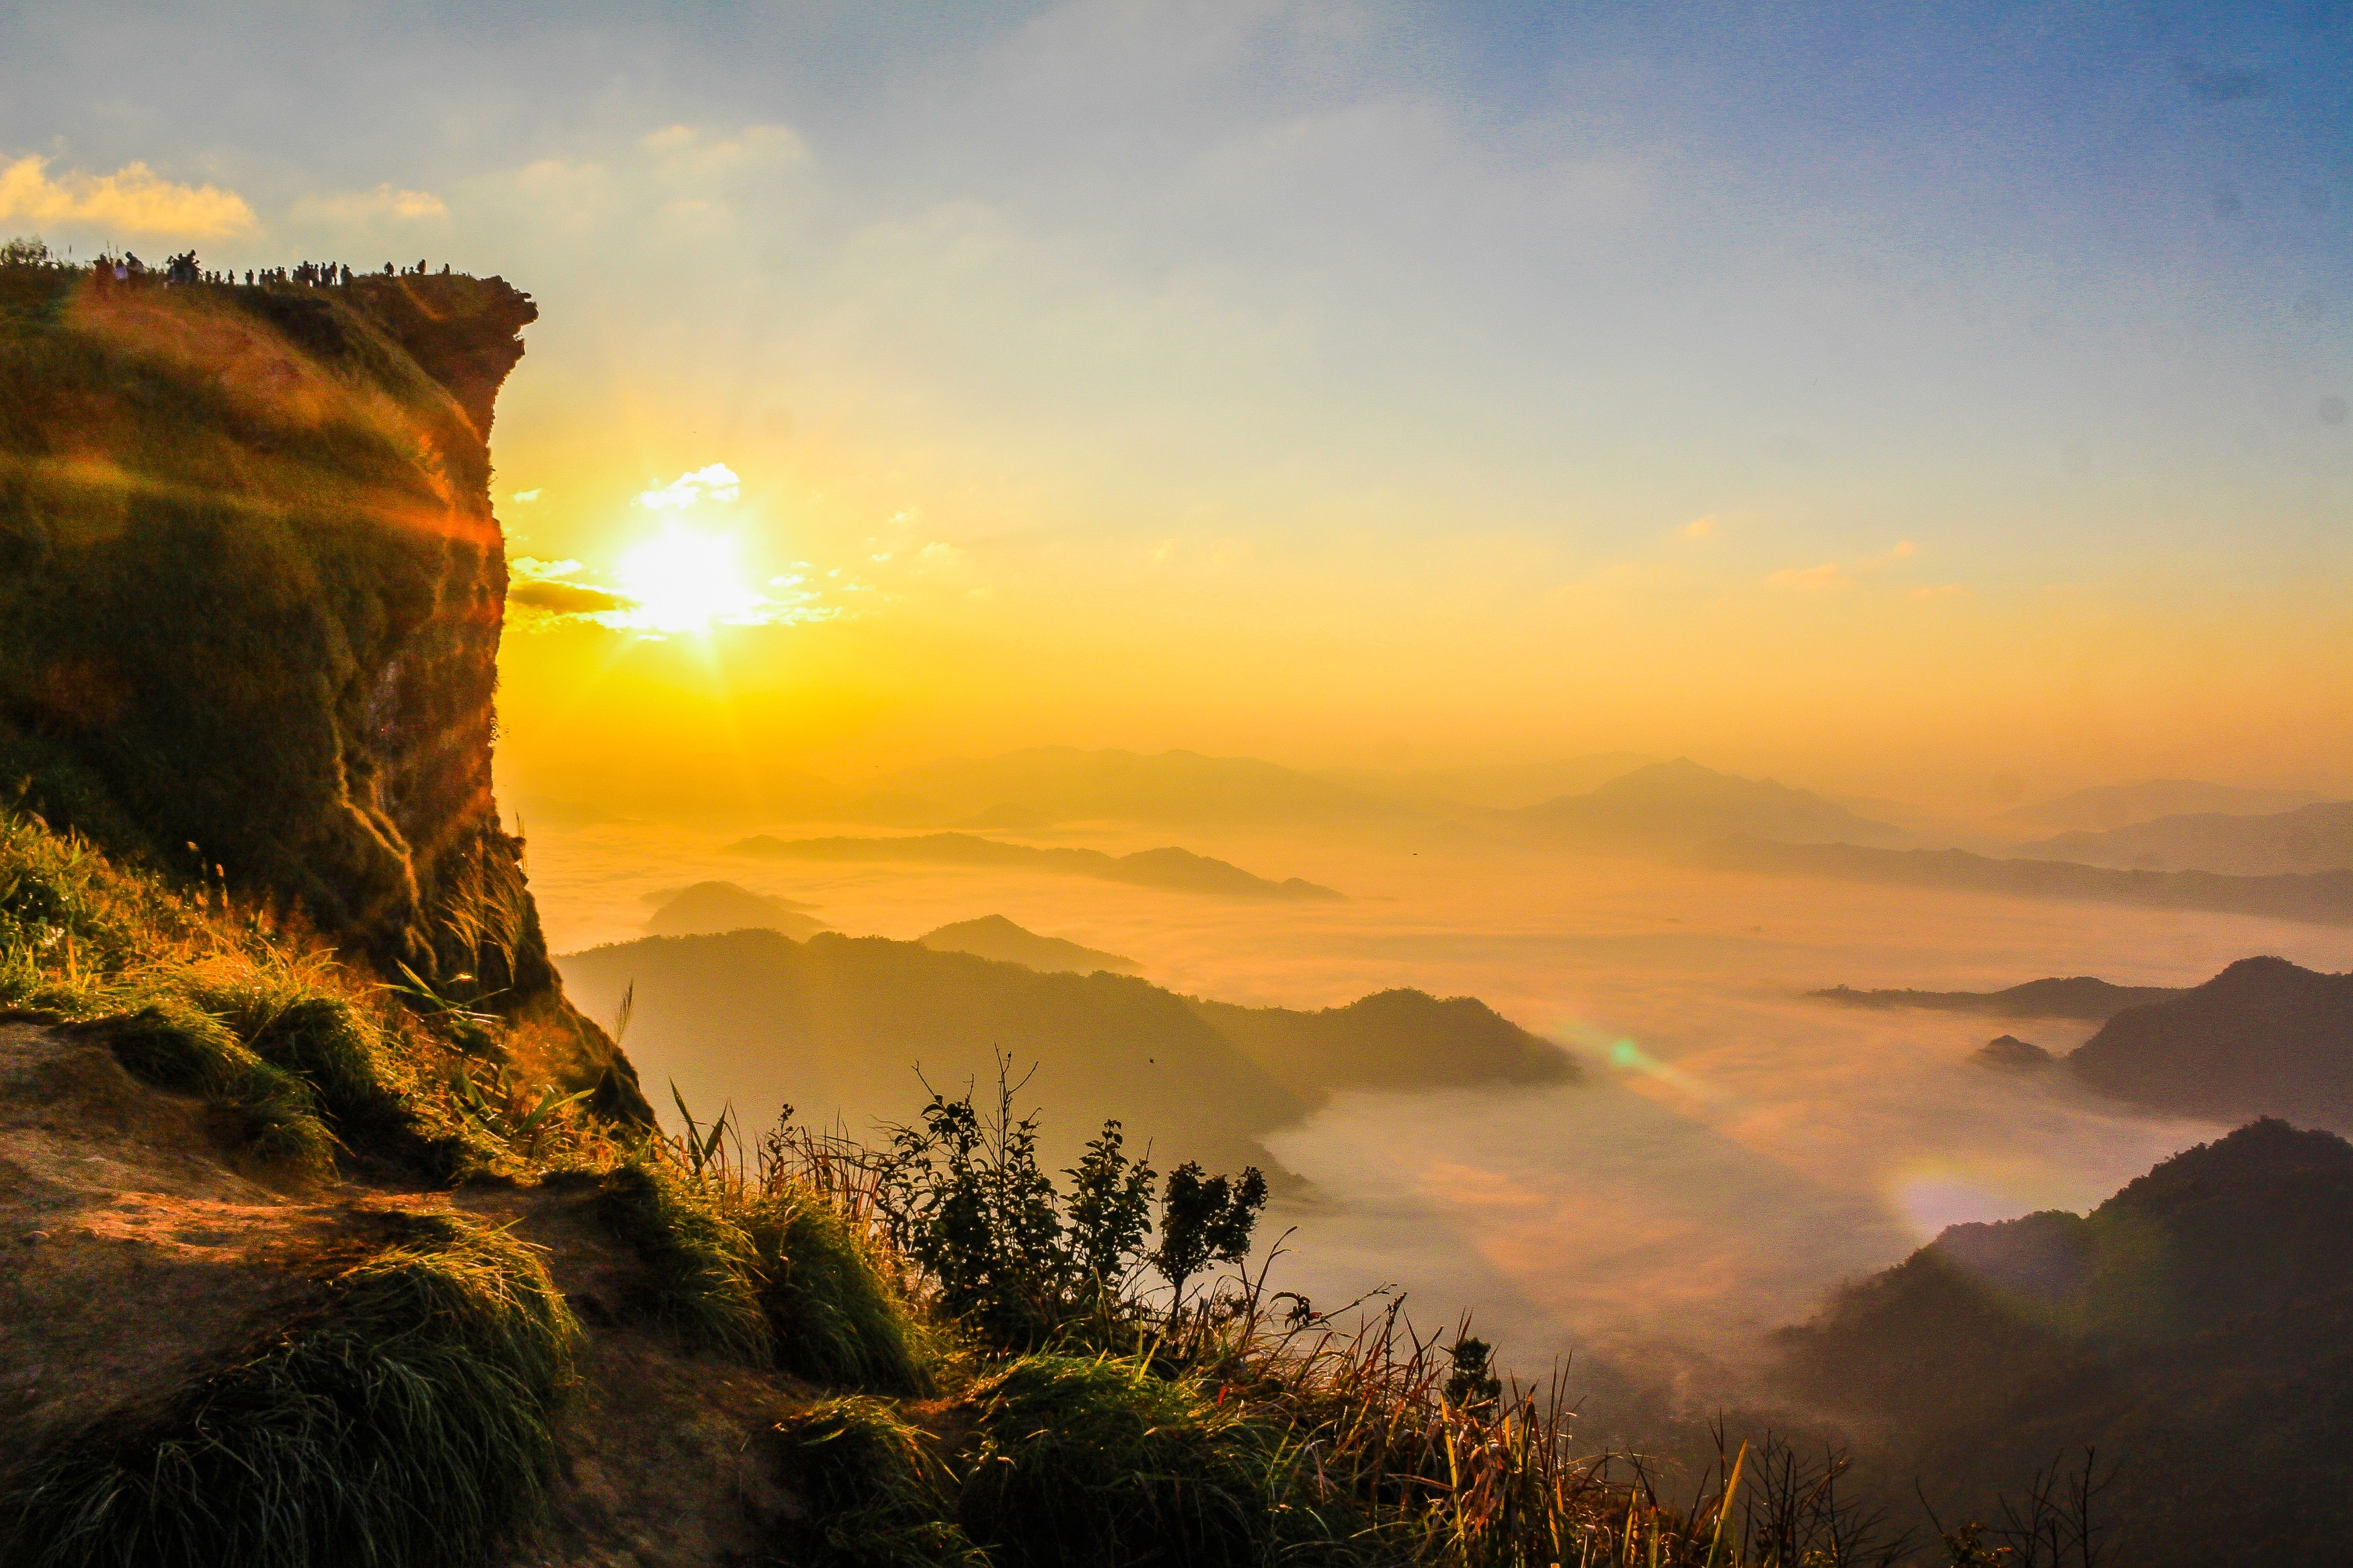 Aerial Photo of Mountain Surrounded by Fog, Adventure, Scenic, Natural, Nature, HQ Photo